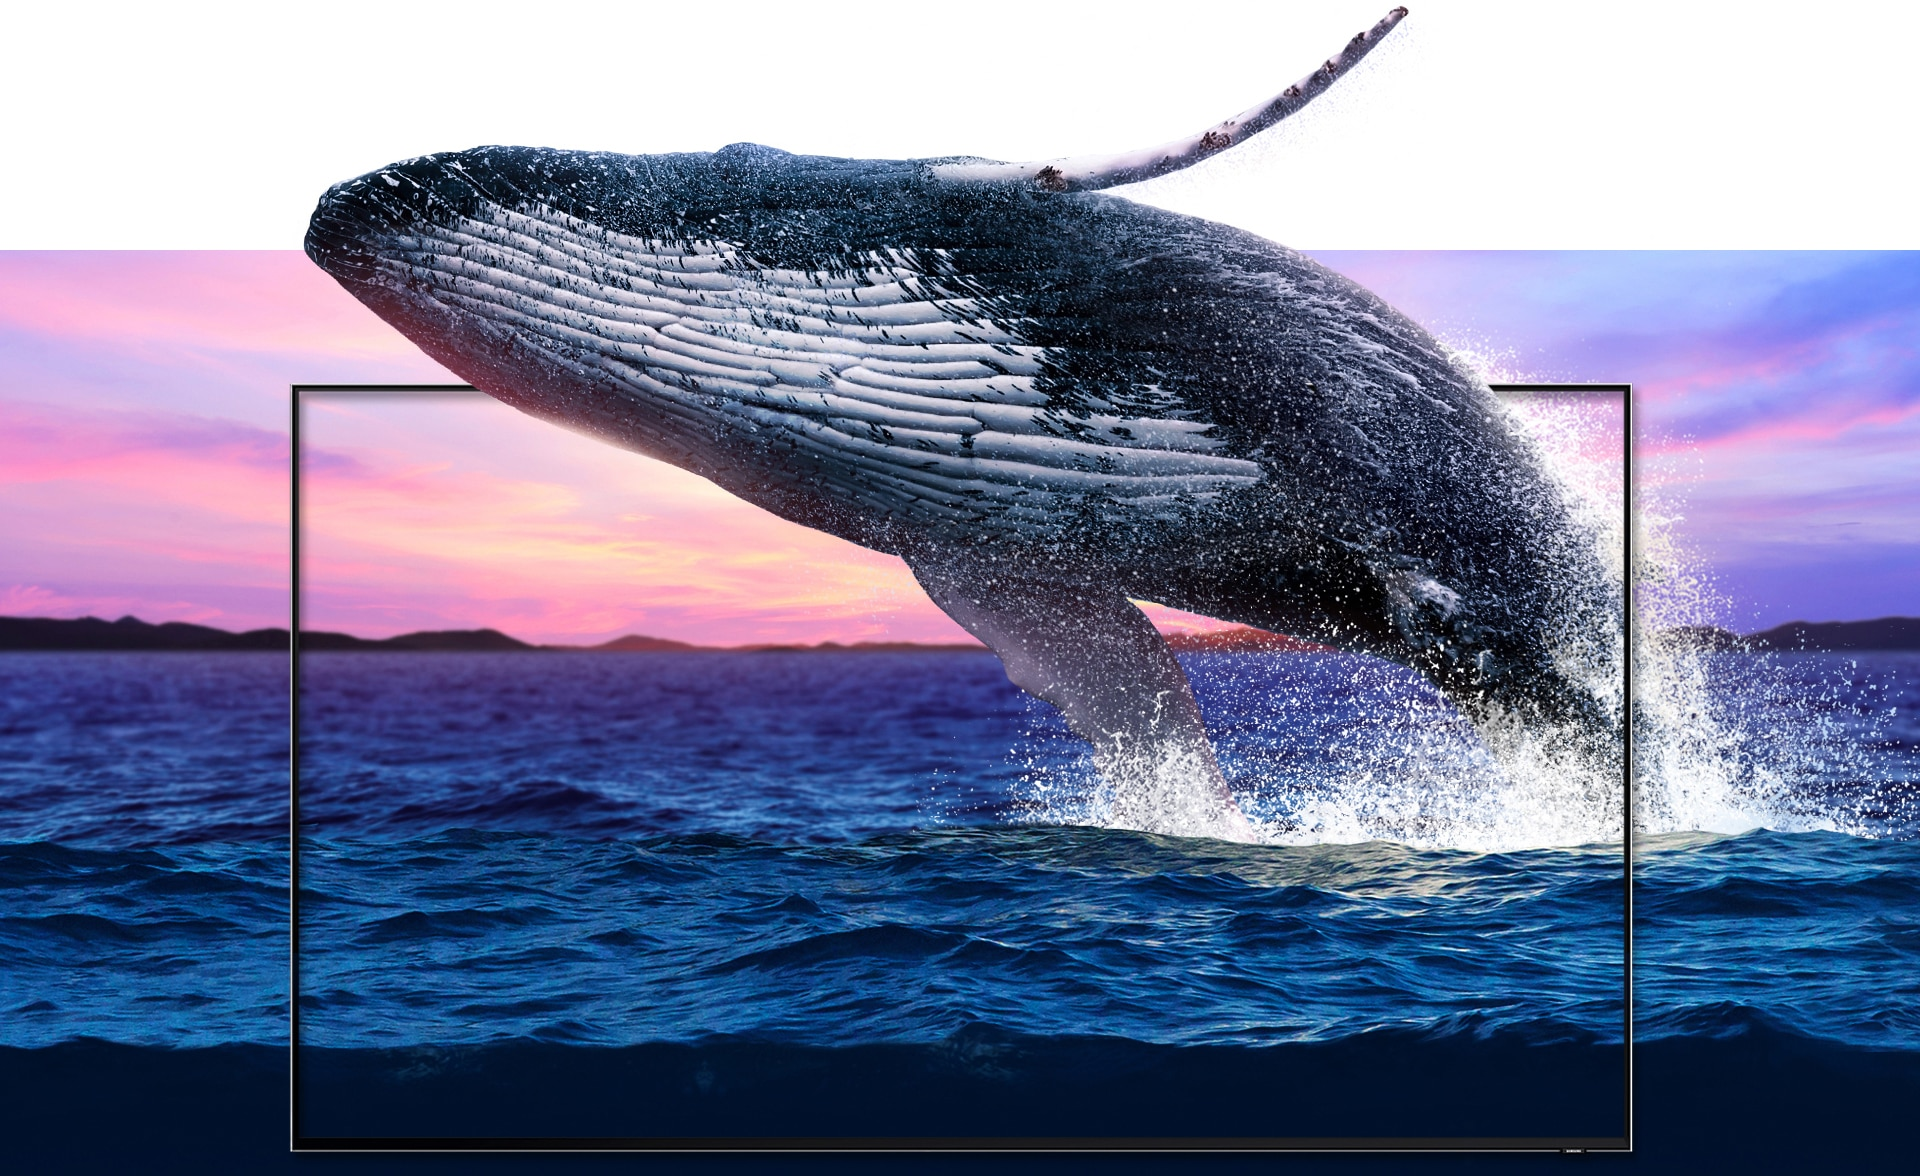 Представляємо QLED 2019 - фото A vibrant seascape juxtaposed with a new QLED TV frame set in the middle, through which a large humpback whale leaps as it emerges from the ocean. The waves and details of the whale are shown in a detail equalling that of real life.